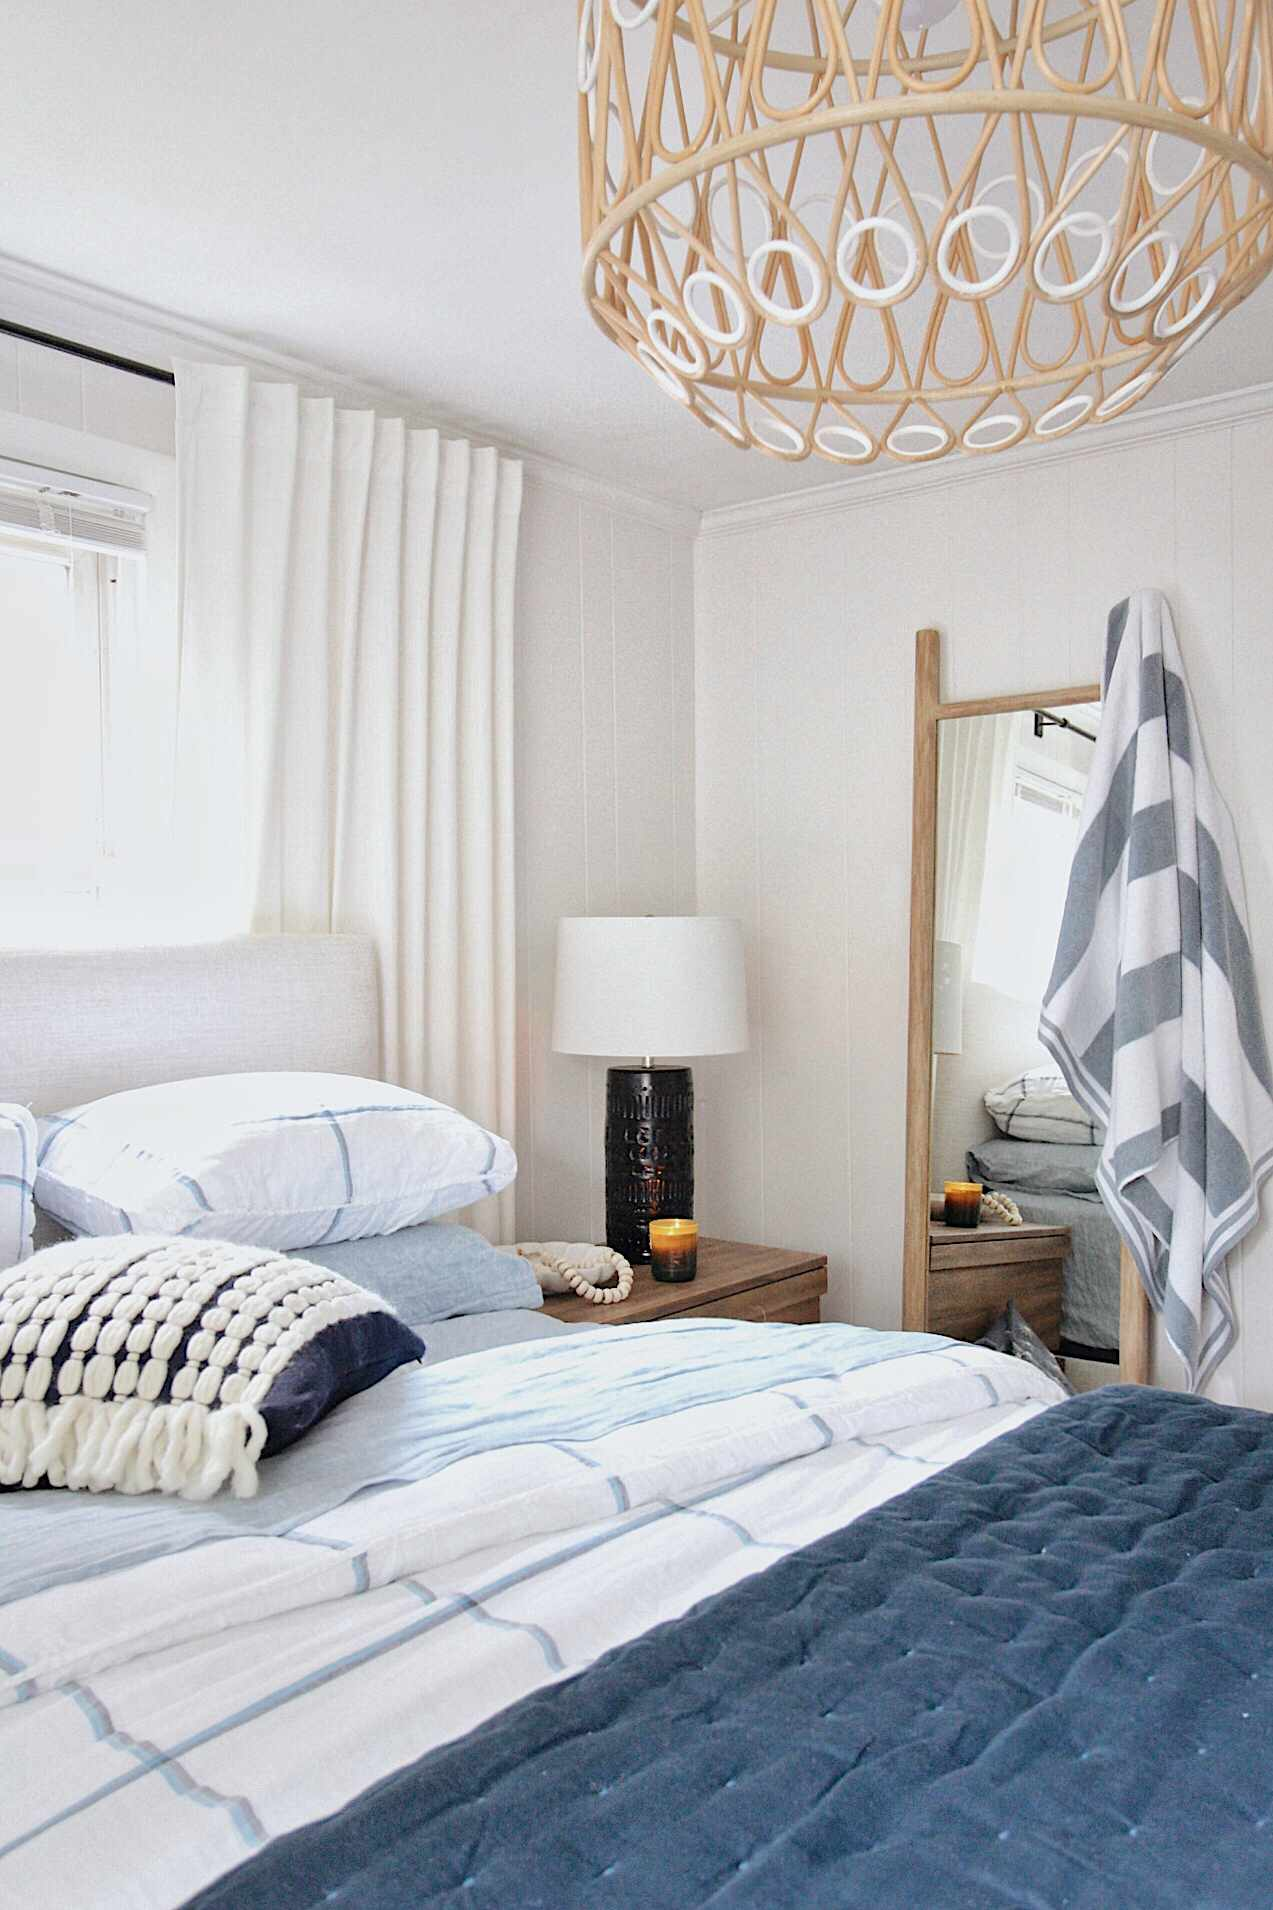 Bedroom with a candle and blue bedding